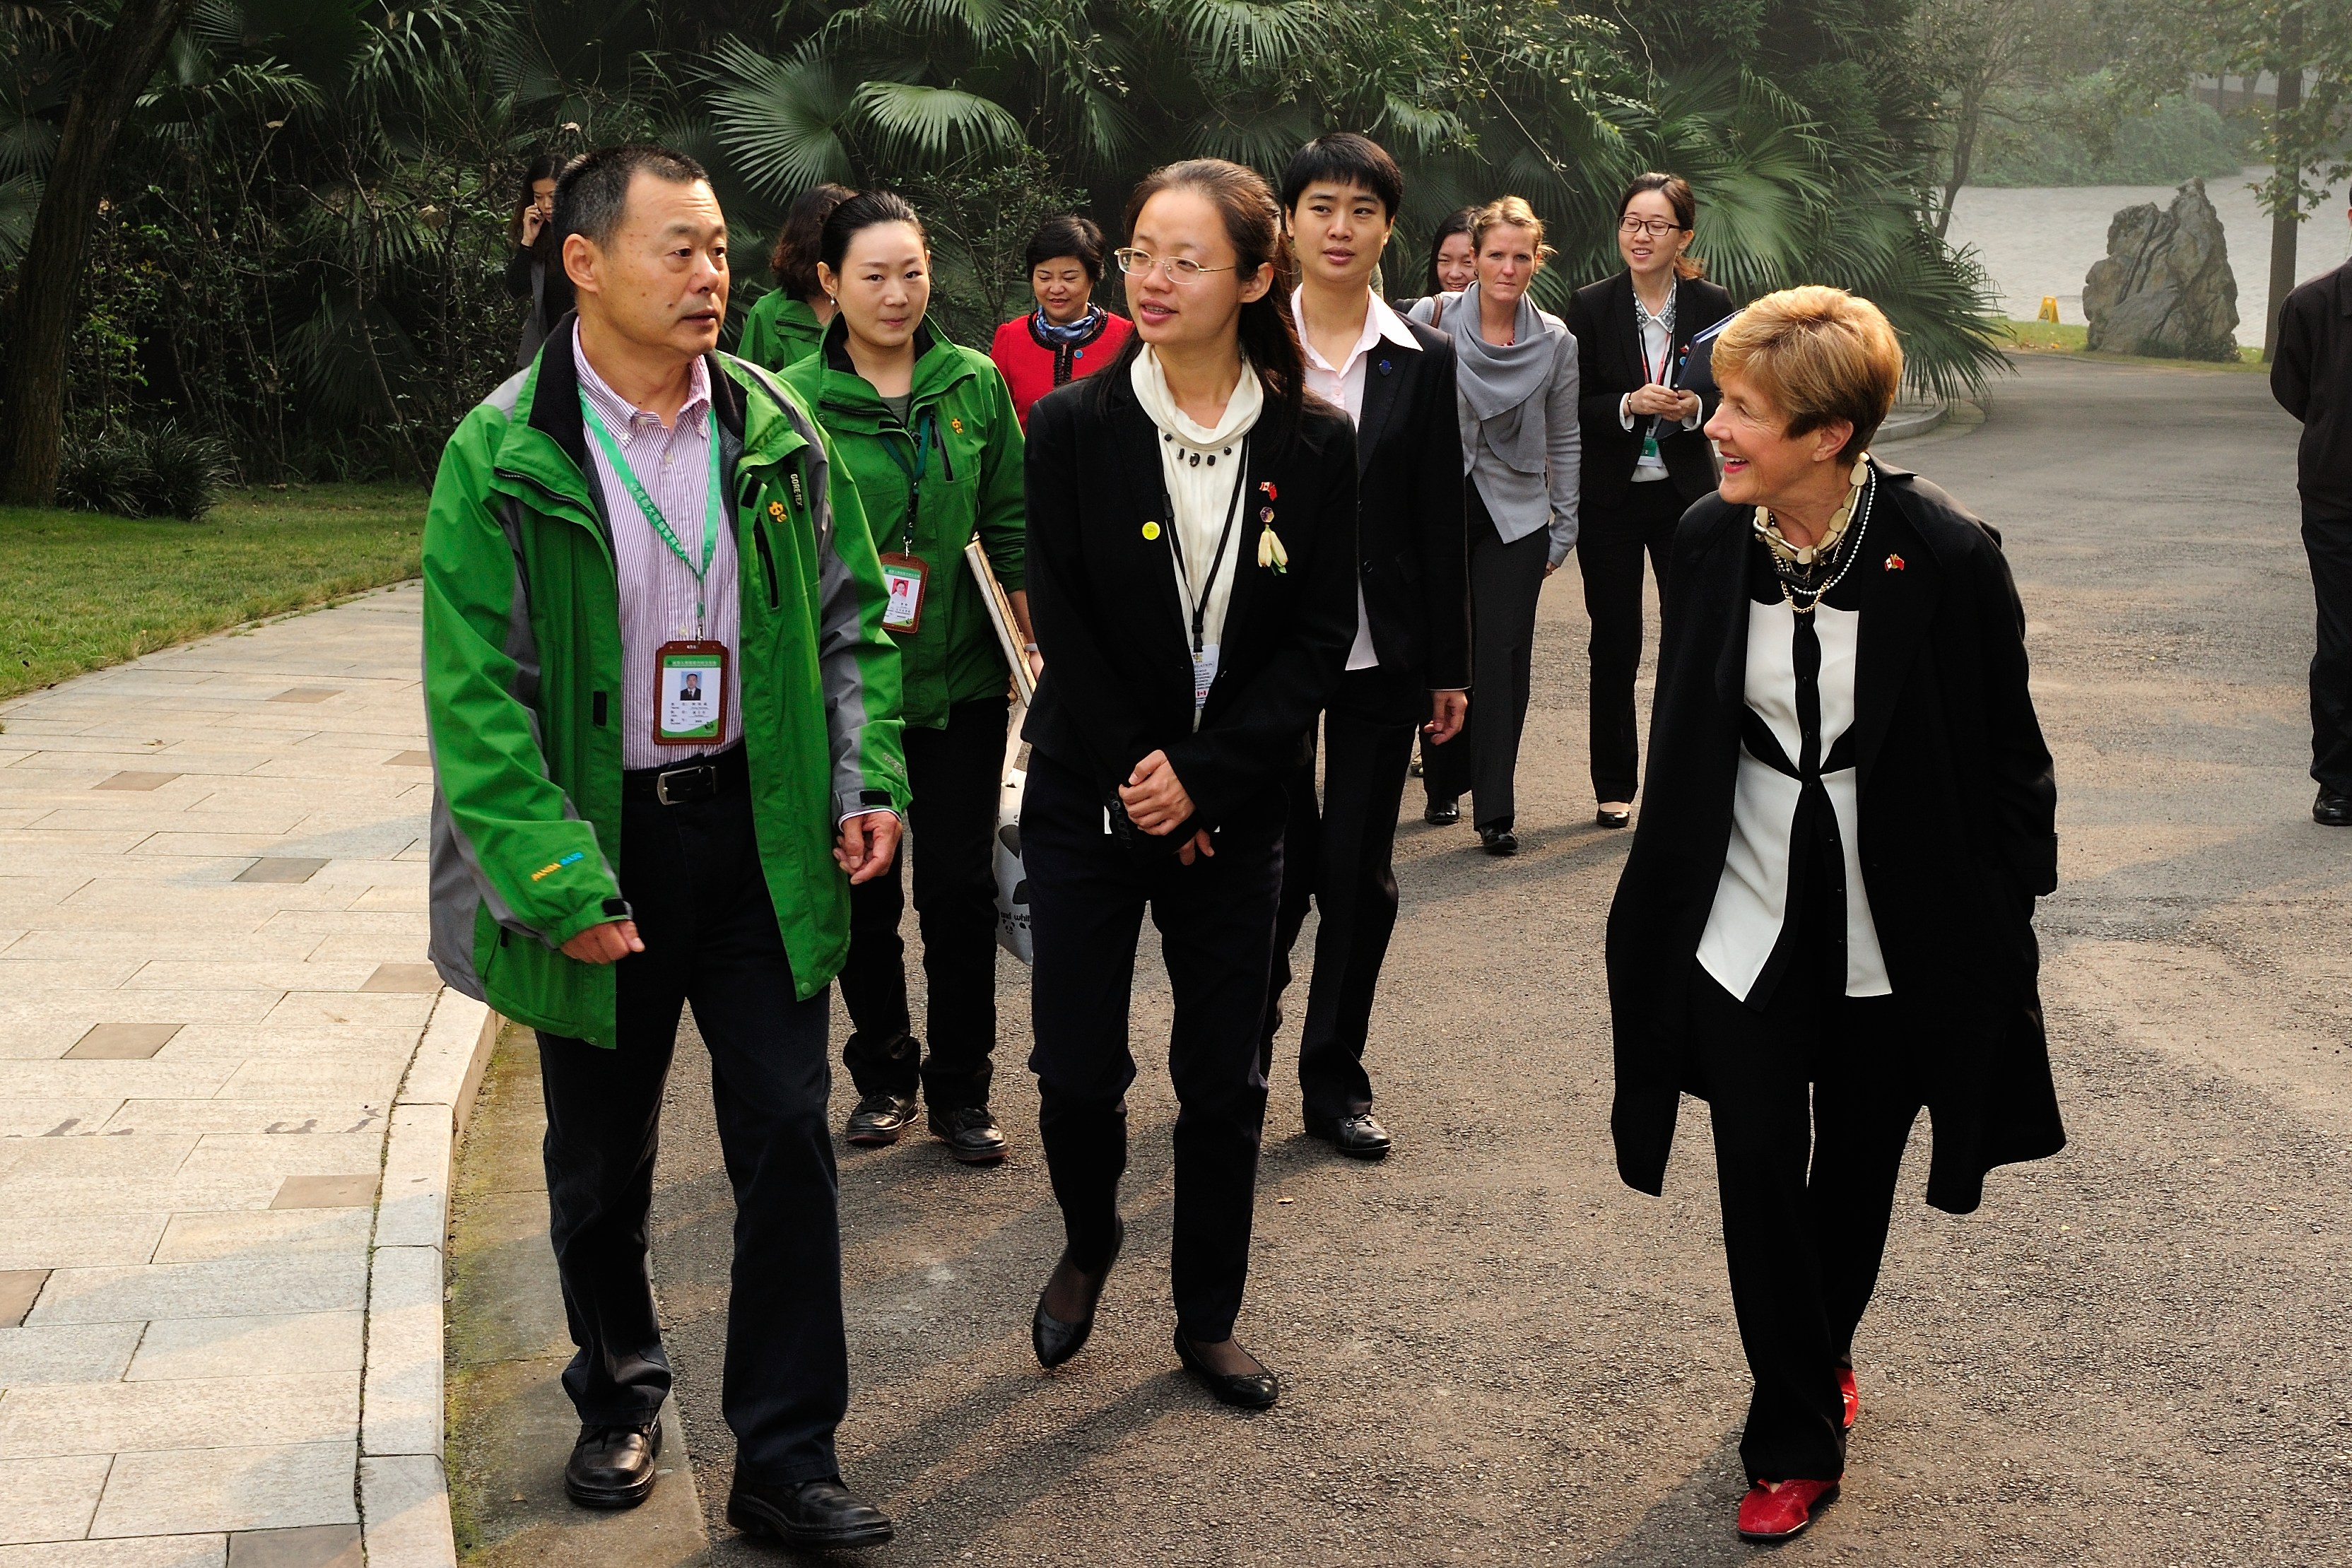 Upon her arrival at the Chengdu Panda Base that morning, Her Excellency will be greeted by its Director, Dr. Zhang Zhihe.